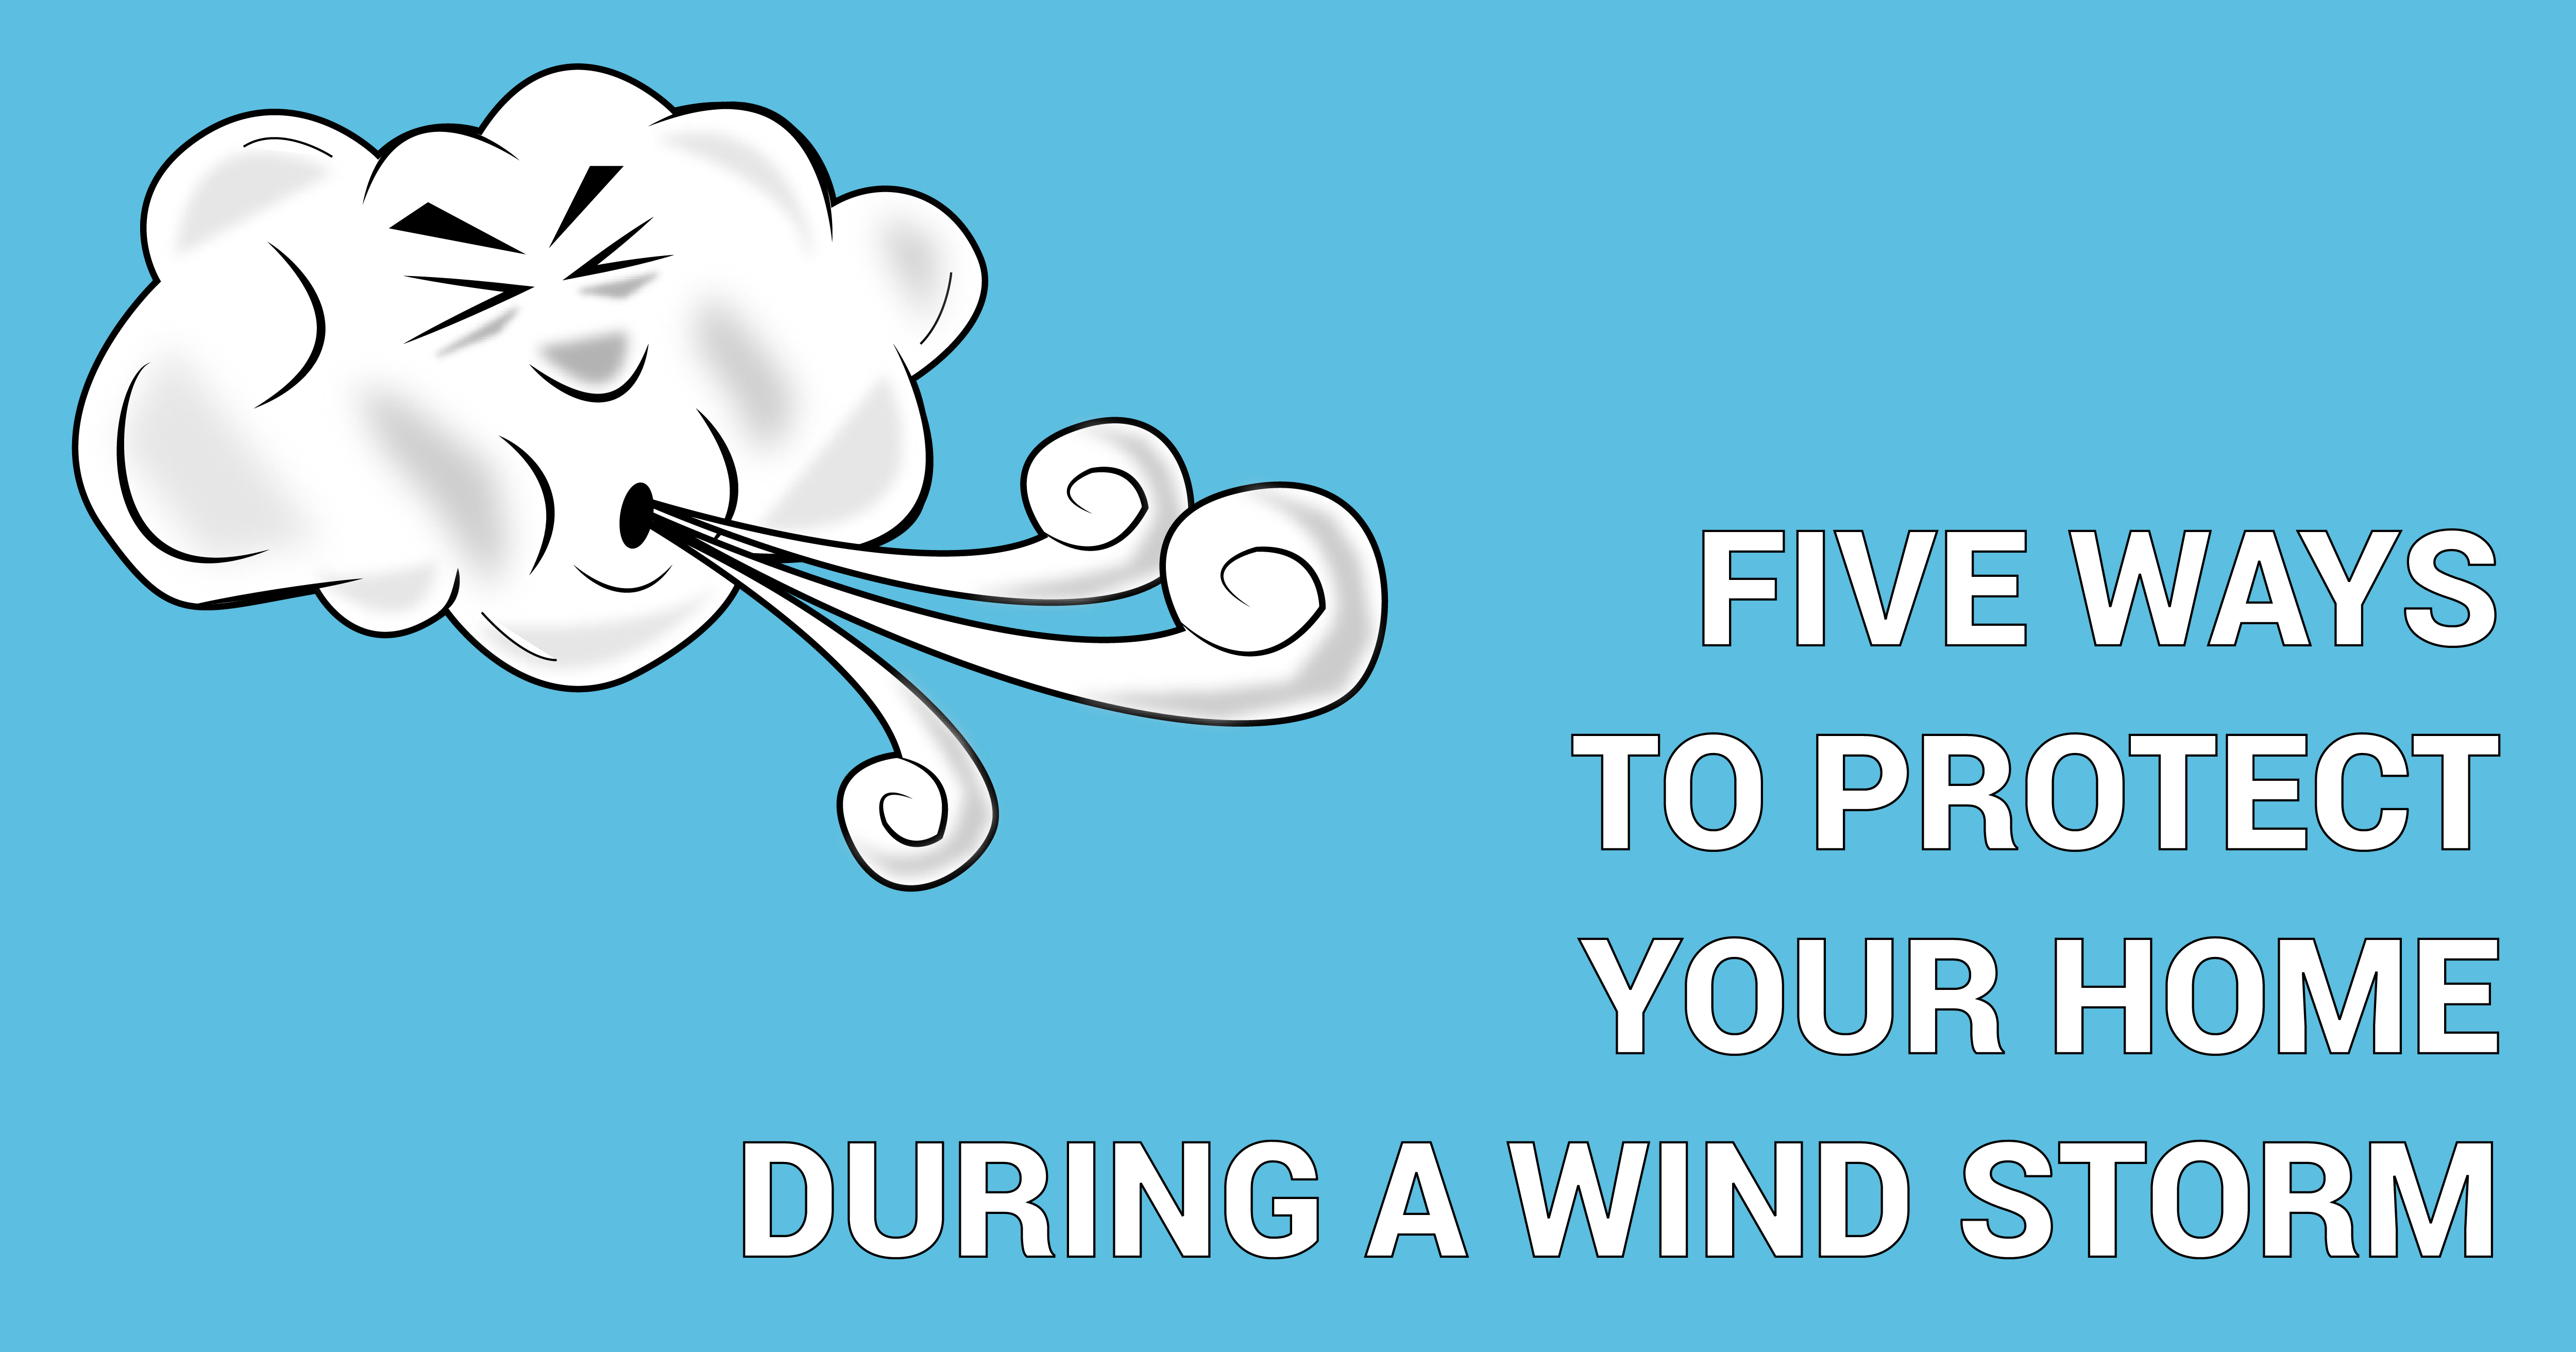 Wind Storm Home Tips